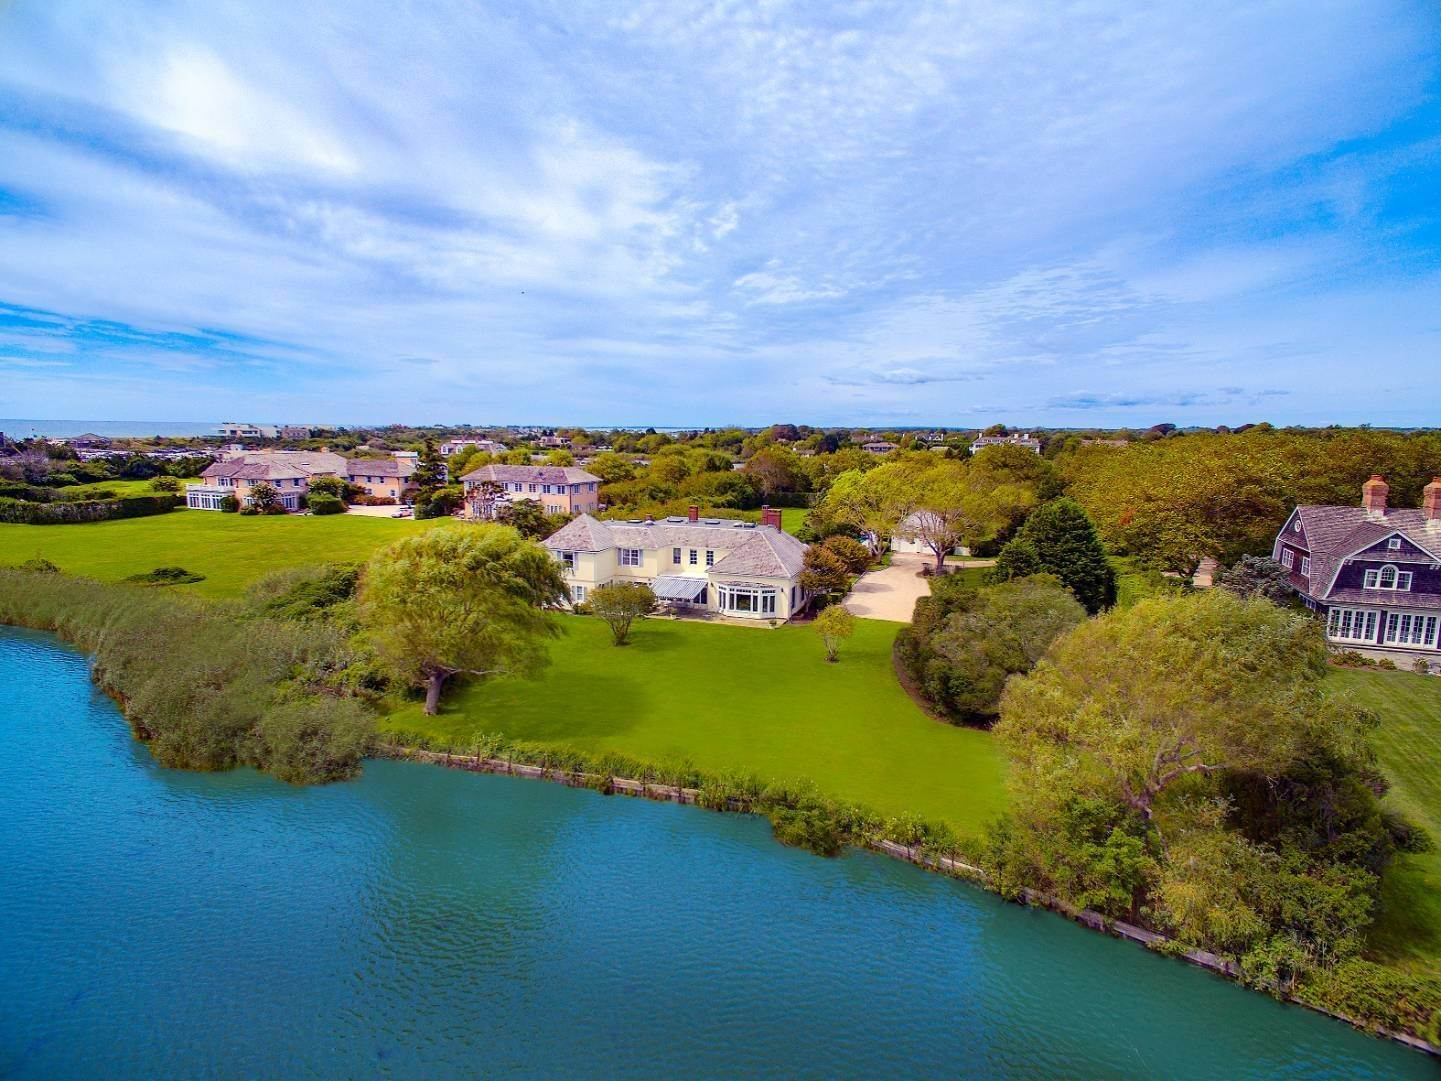 Single Family Home for Sale at Dogwood Pond On Coopers Neck Lane, Southampton 284 Coopers Neck Lane, Southampton, NY 11968